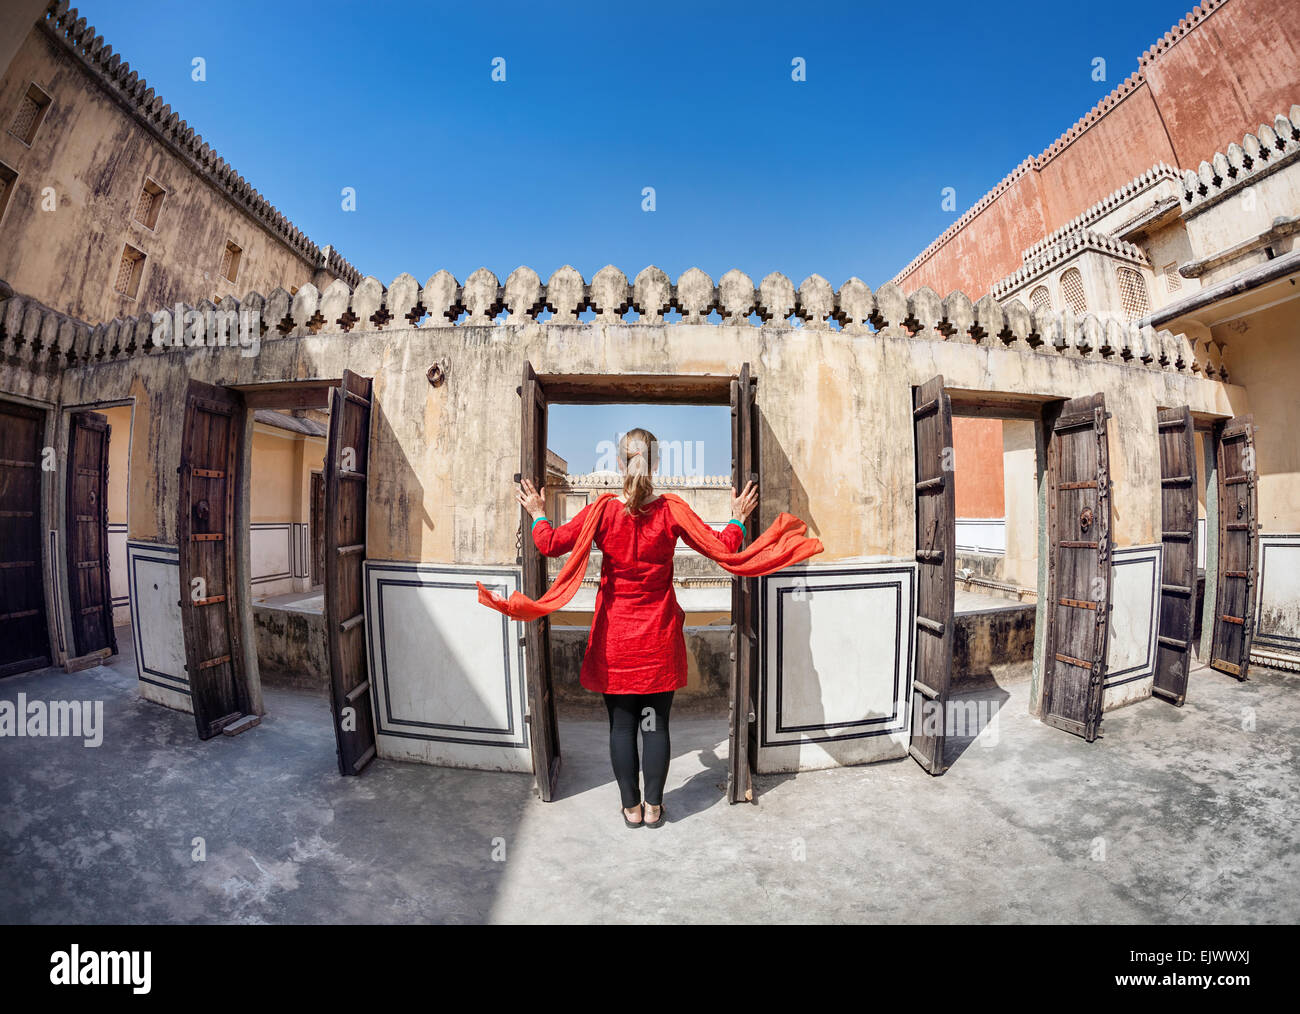 Woman in red dress with scarf opening the door in Hawa Mahal, Rajasthan, India - Stock Image